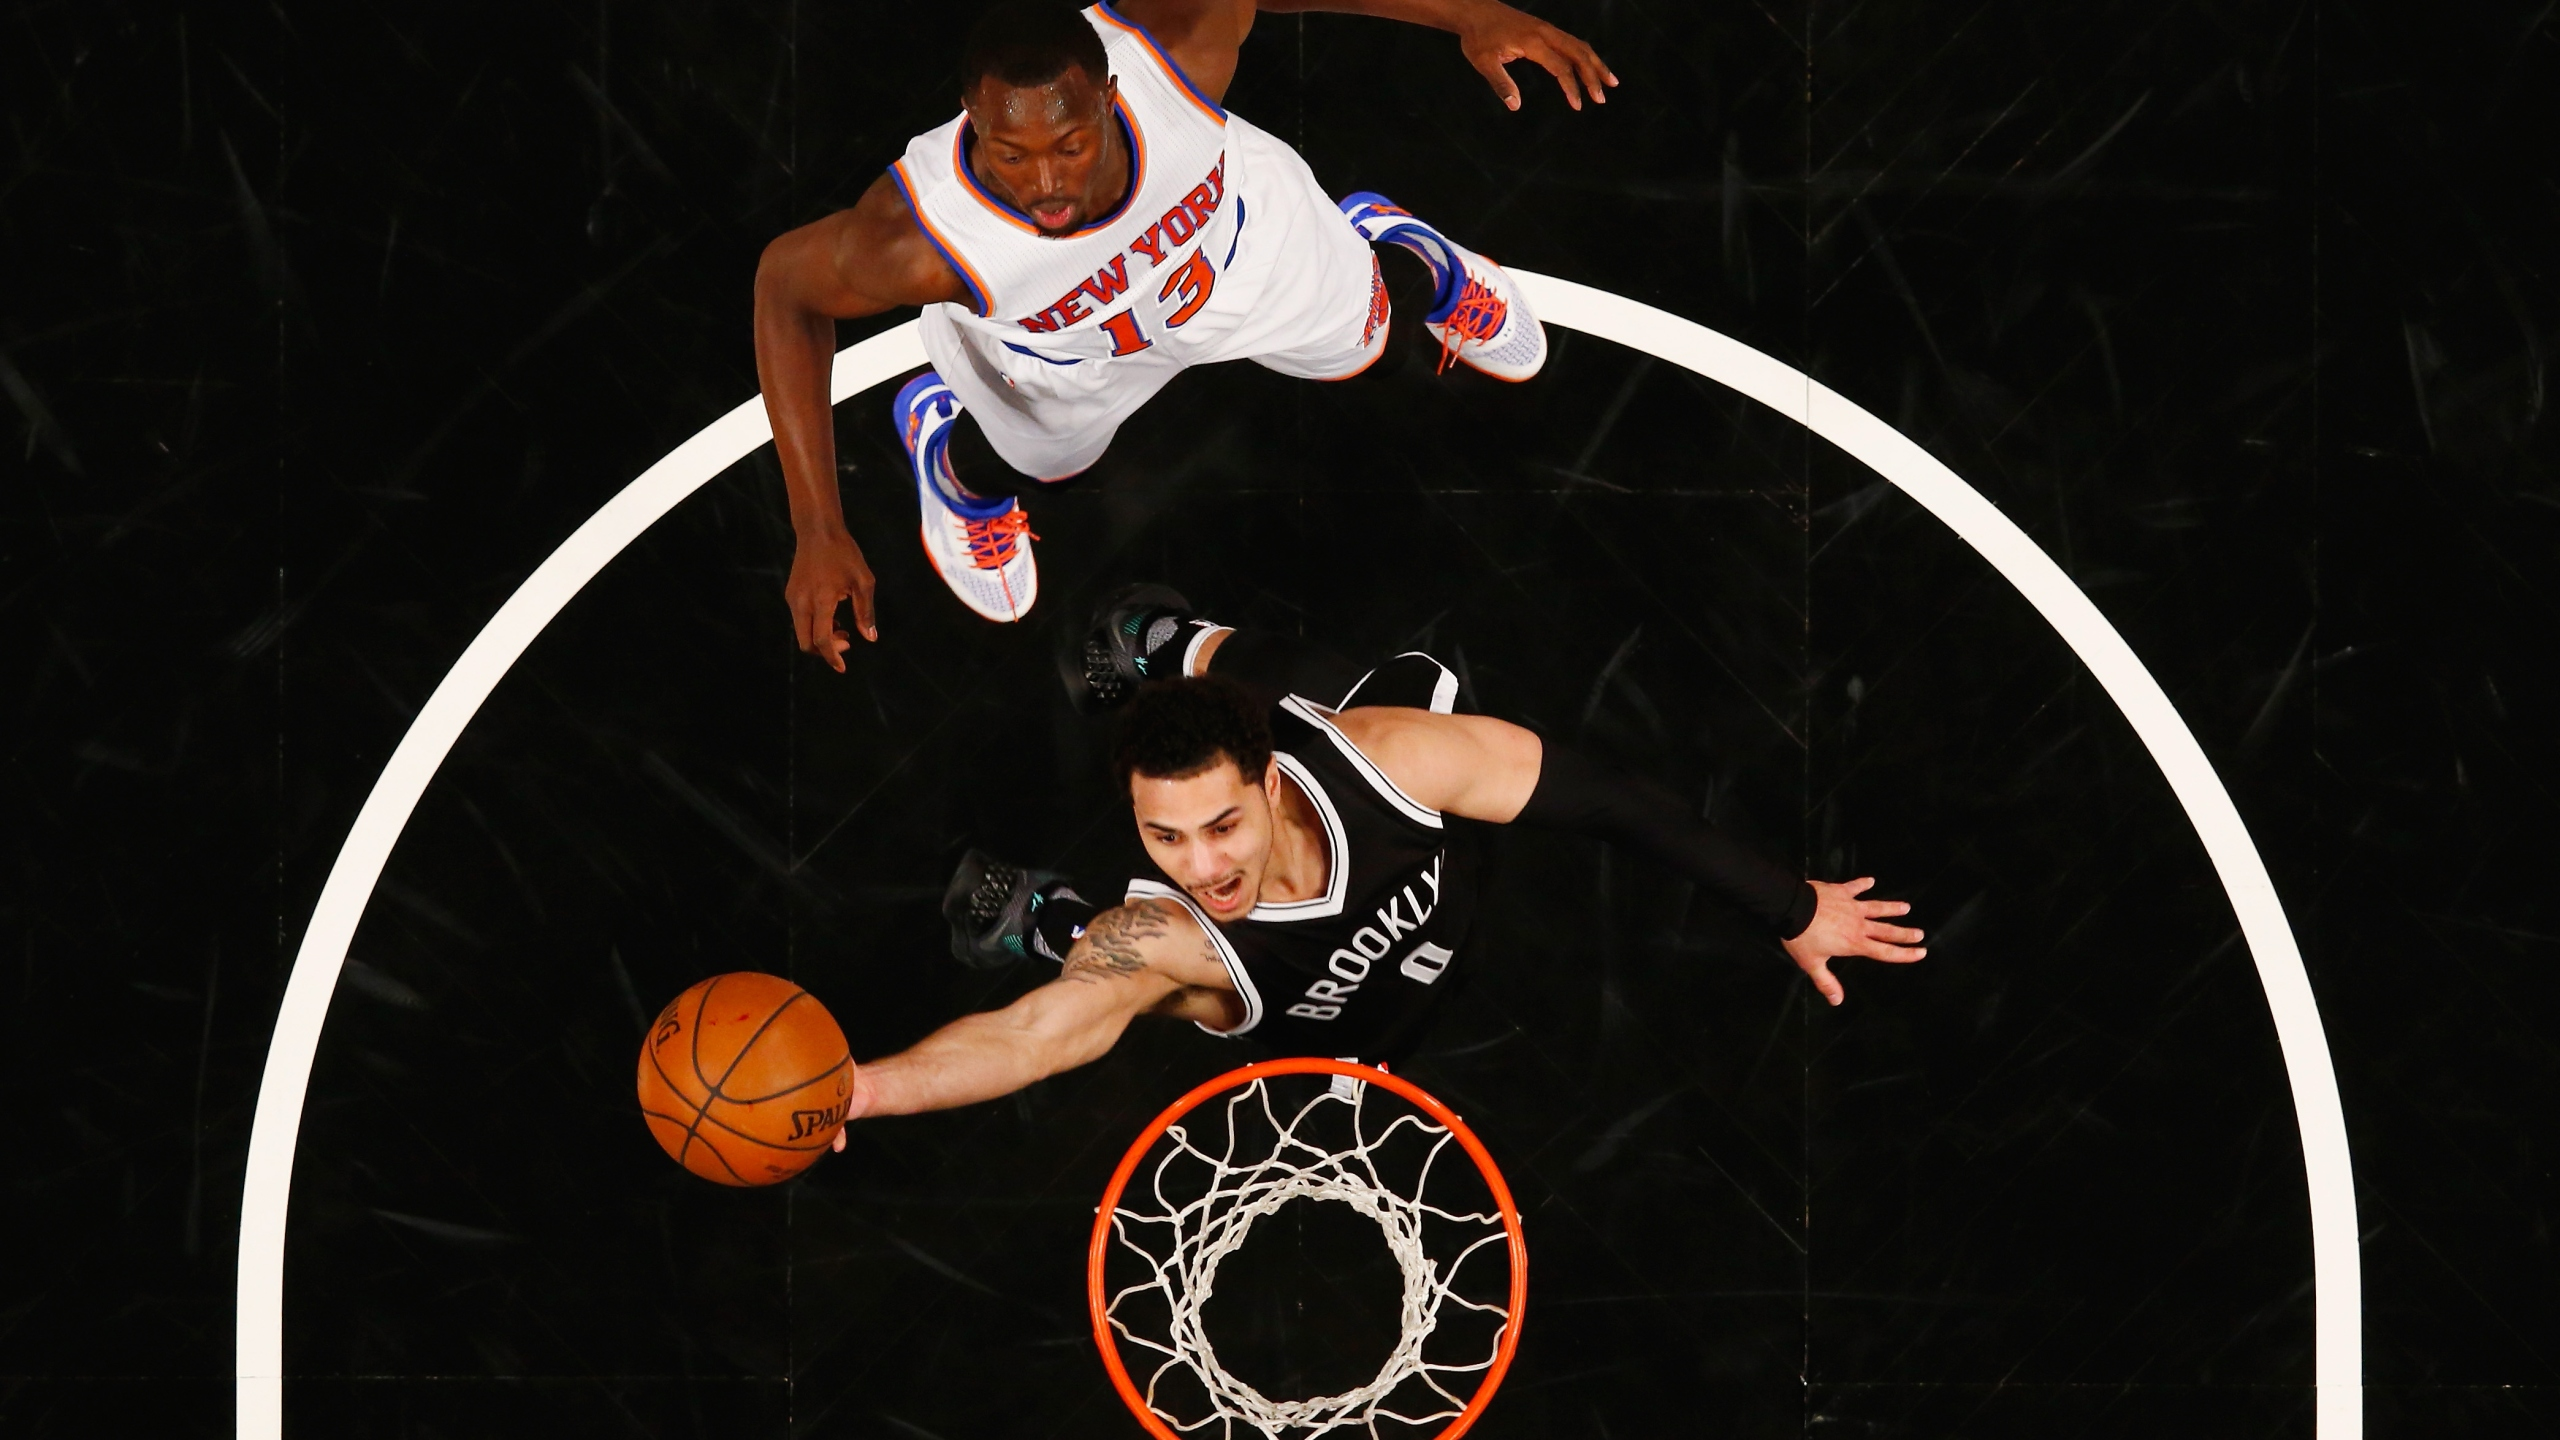 Nets beat Knicks 110-104 to end 10-game homeskid